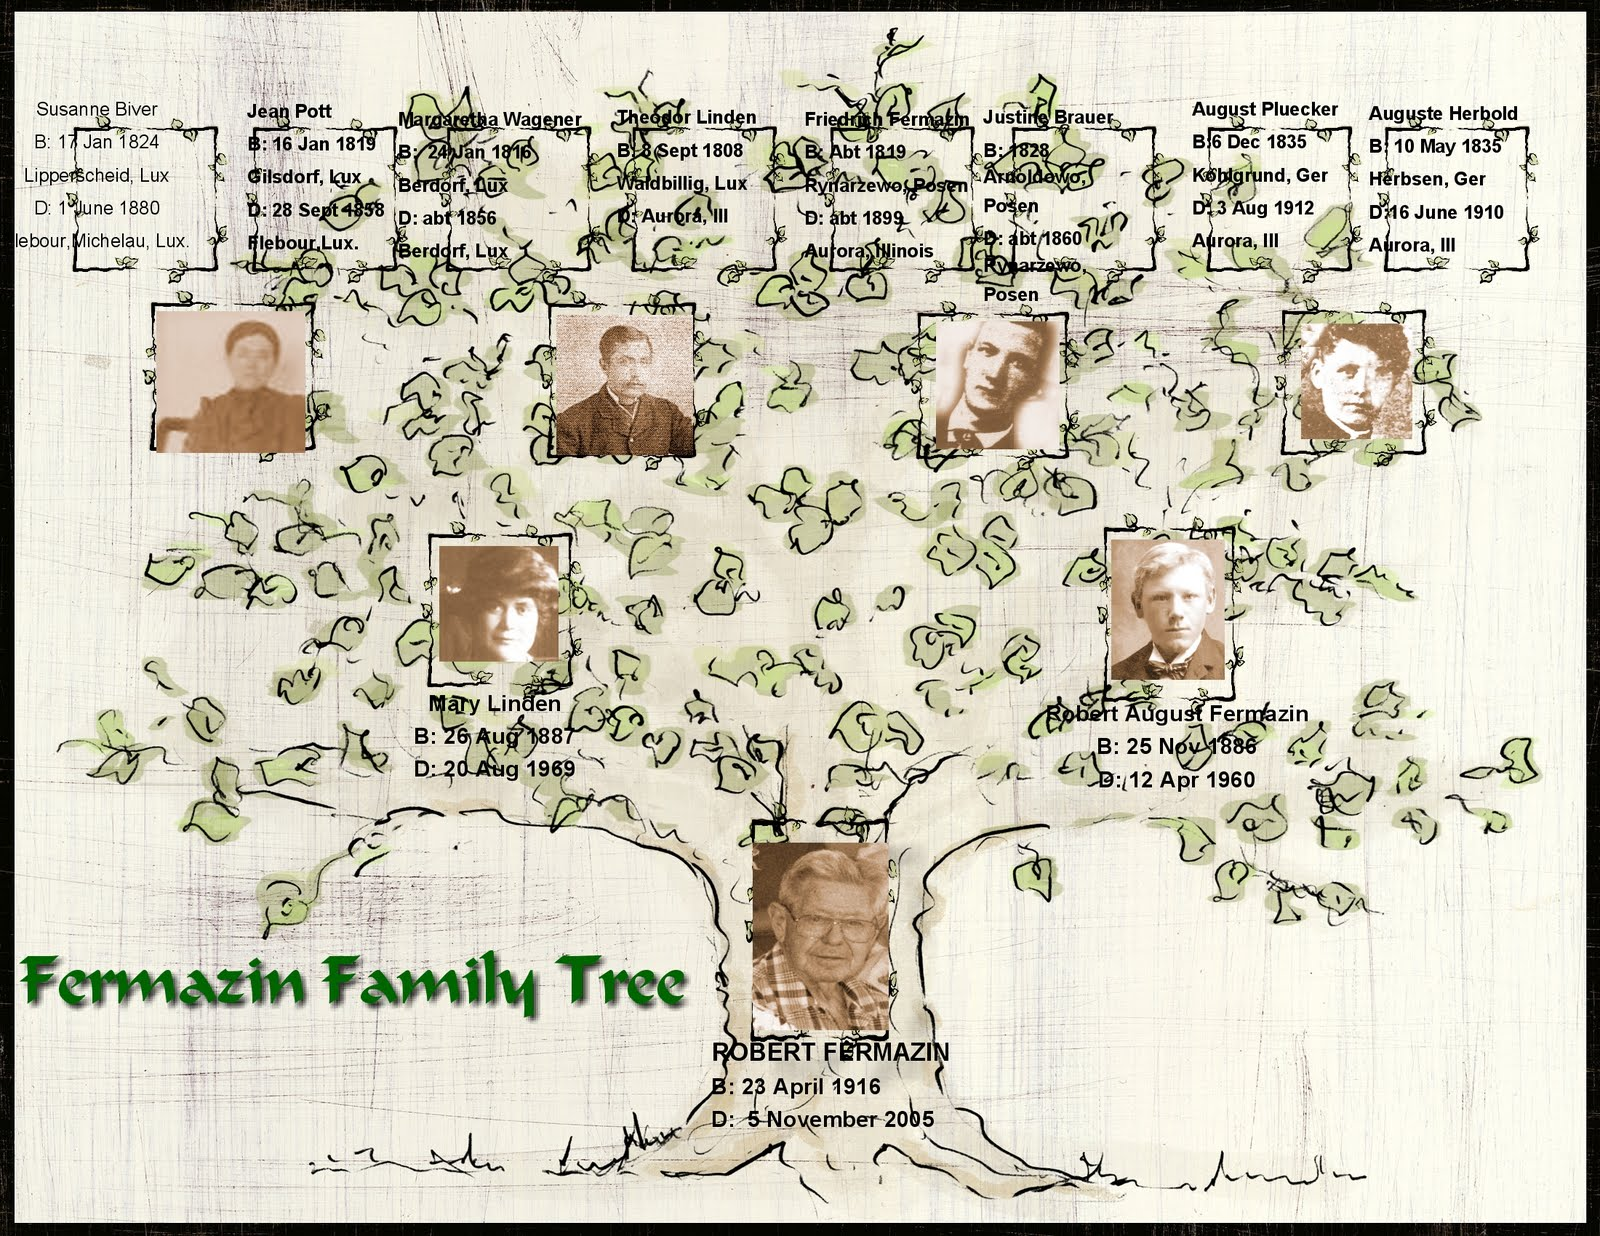 How to scrapbook family tree - Carnival Of Genealogy 96th Edition